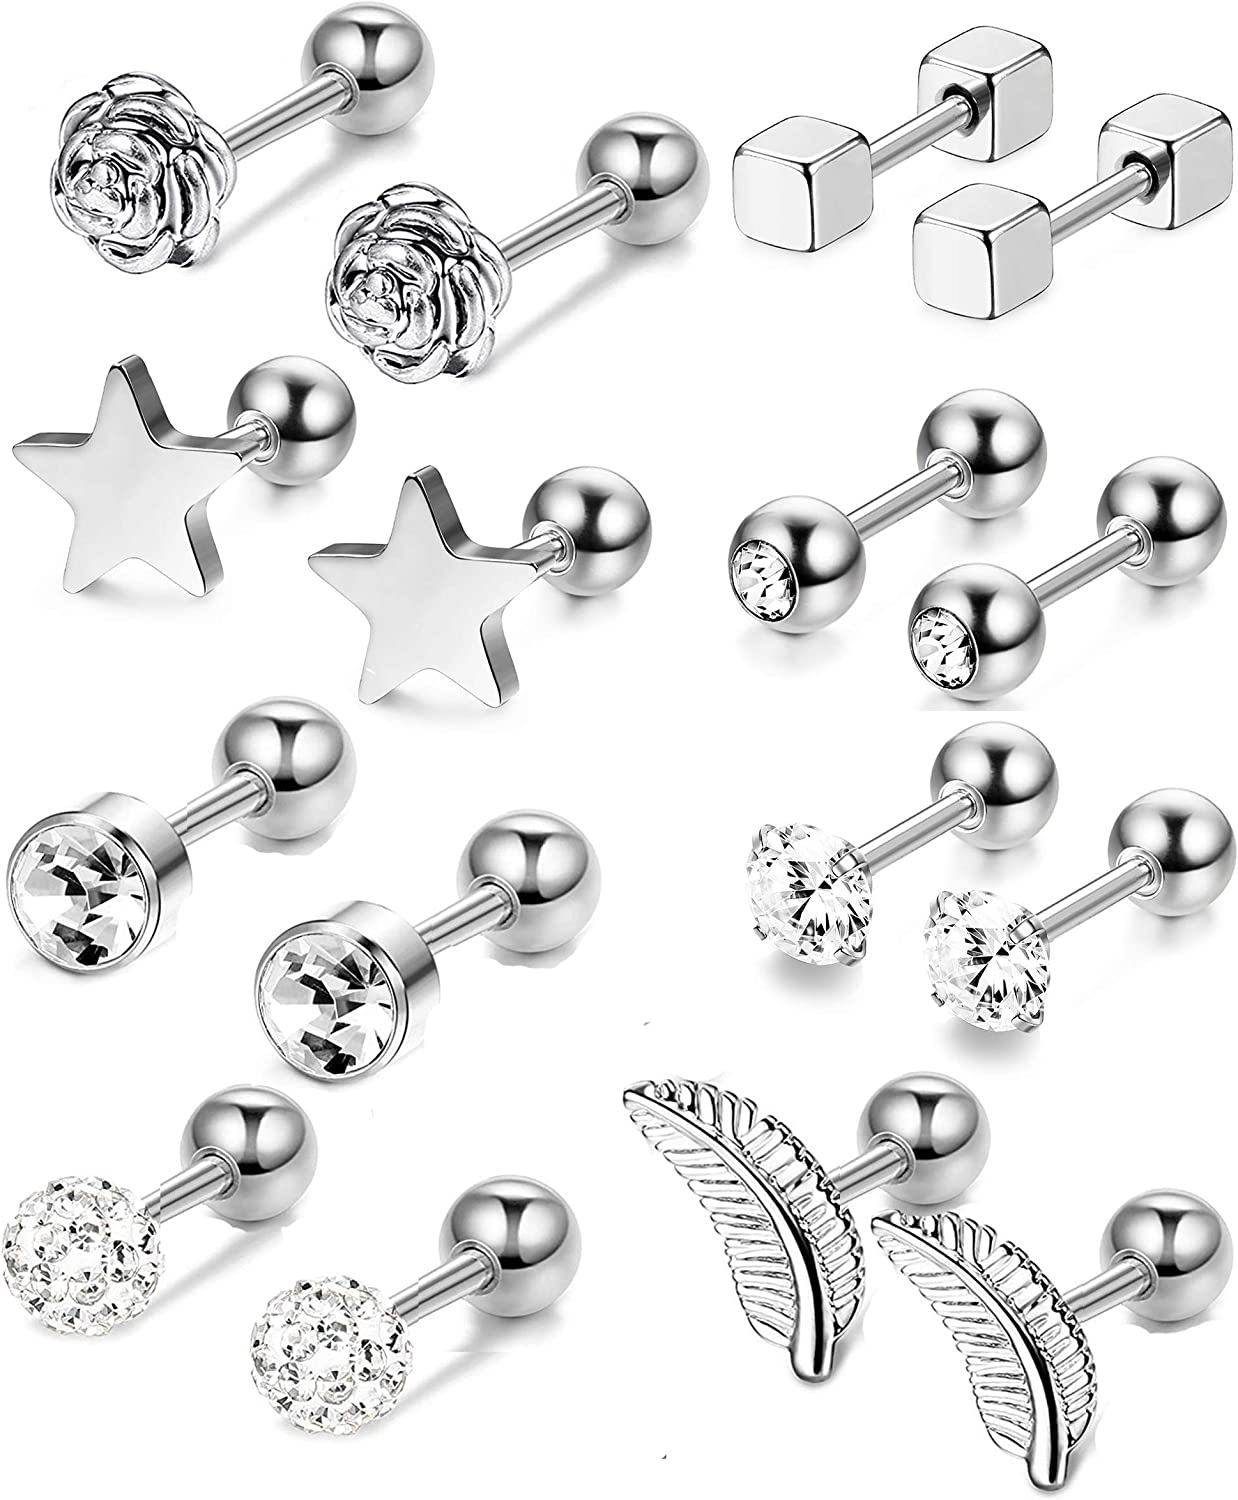 Thunaraz 8Pairs 16G Helix Cartilage Trague Earrings for Women Men Heart Rose Flower Star Earrings Cubic Zirconia Inlaid Cartilage Stud Barbell Ear Piercings Jewelry